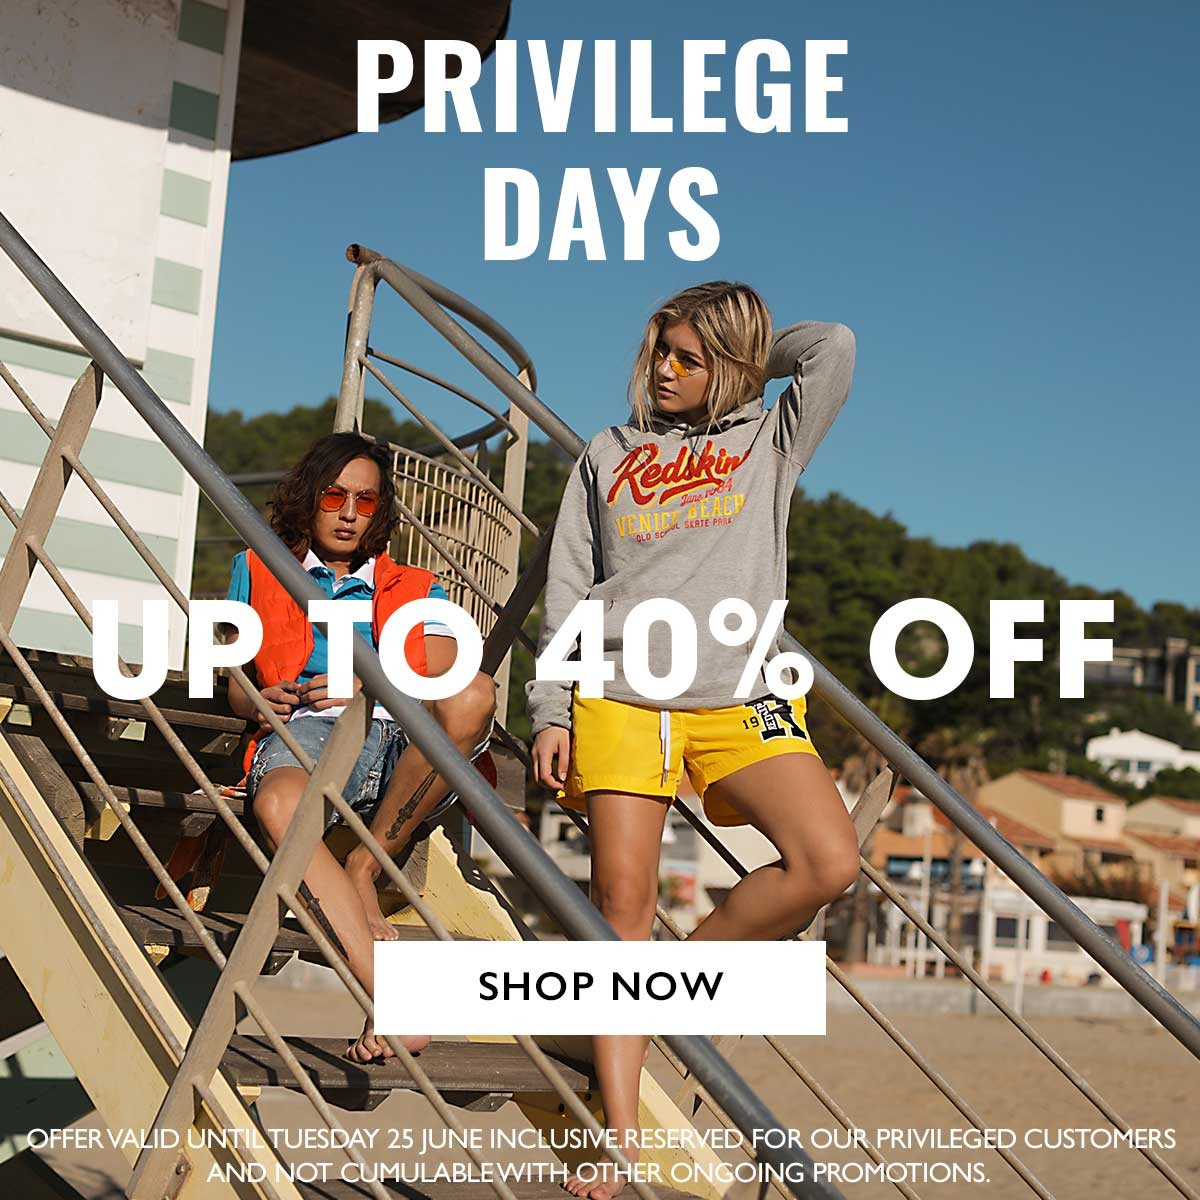 Privilege days